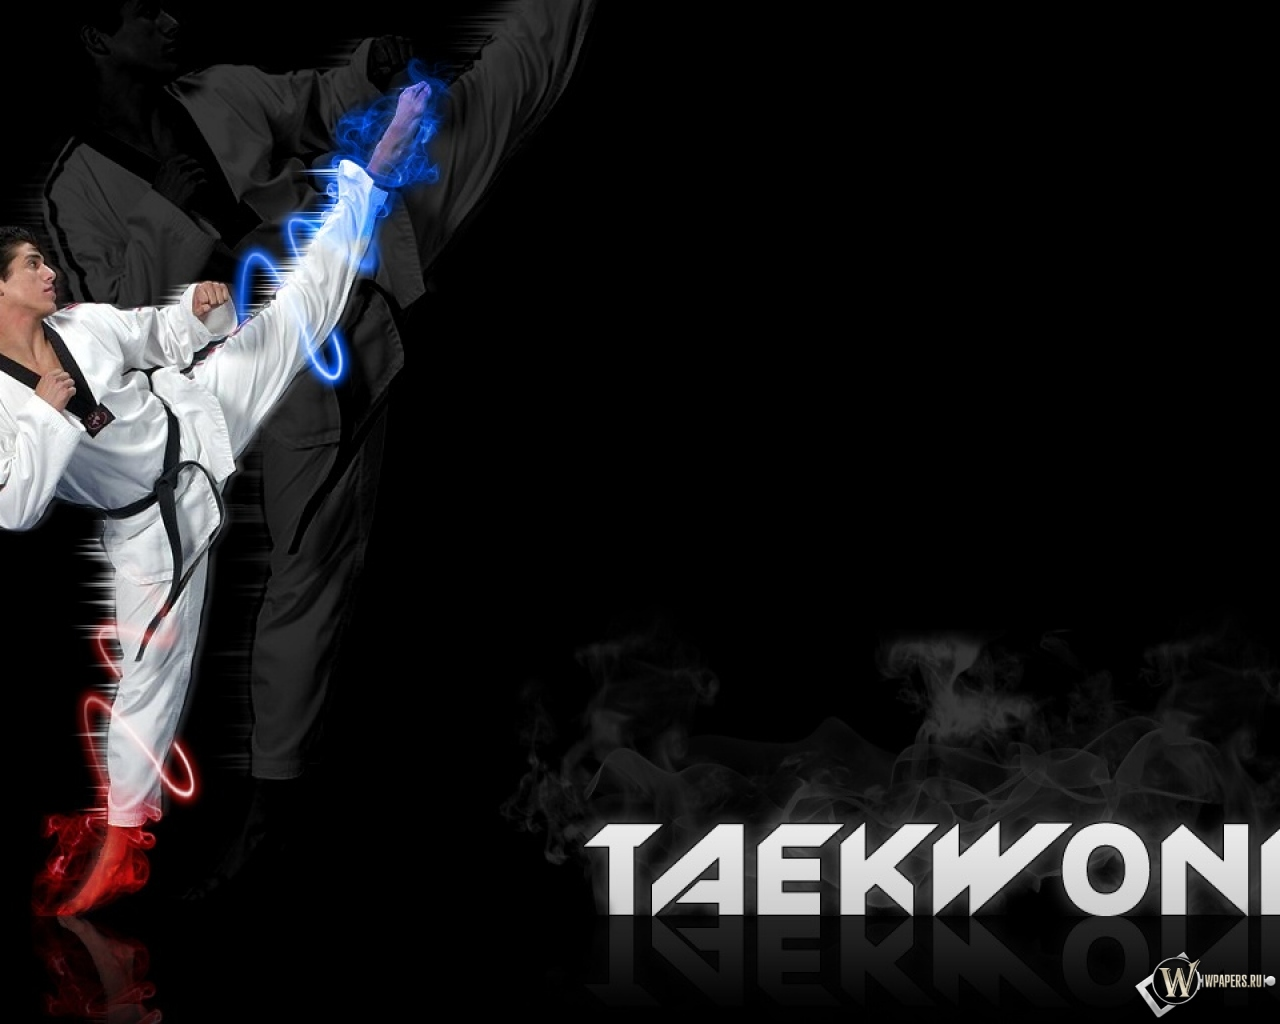 Taekwondo Wallpaper 12801024 02368 HD Wallpapers 1280x1024